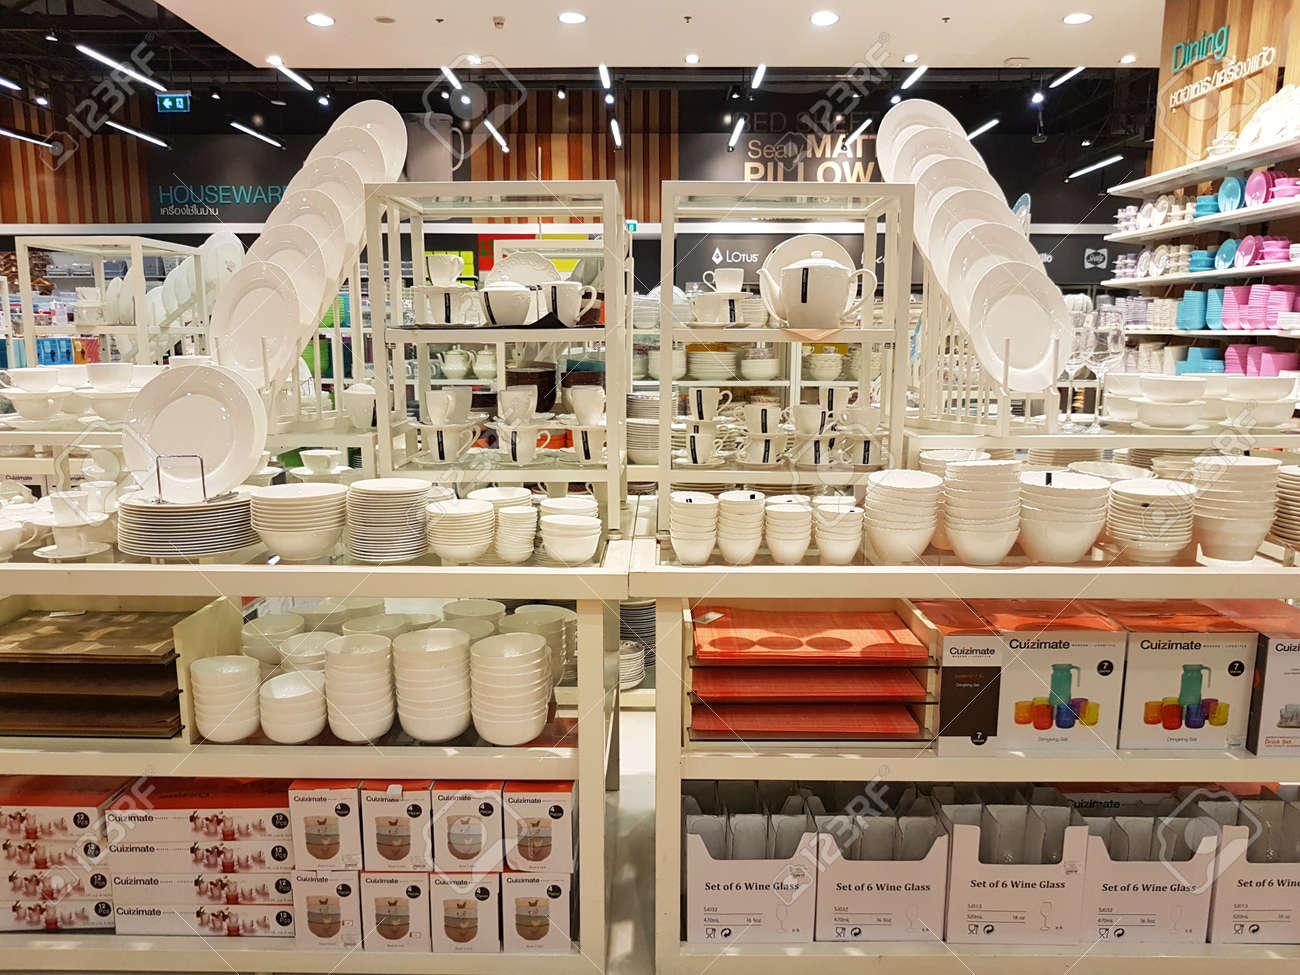 Kitchenware Shop Chiang Rai Thailand February 2 Department Store Interior